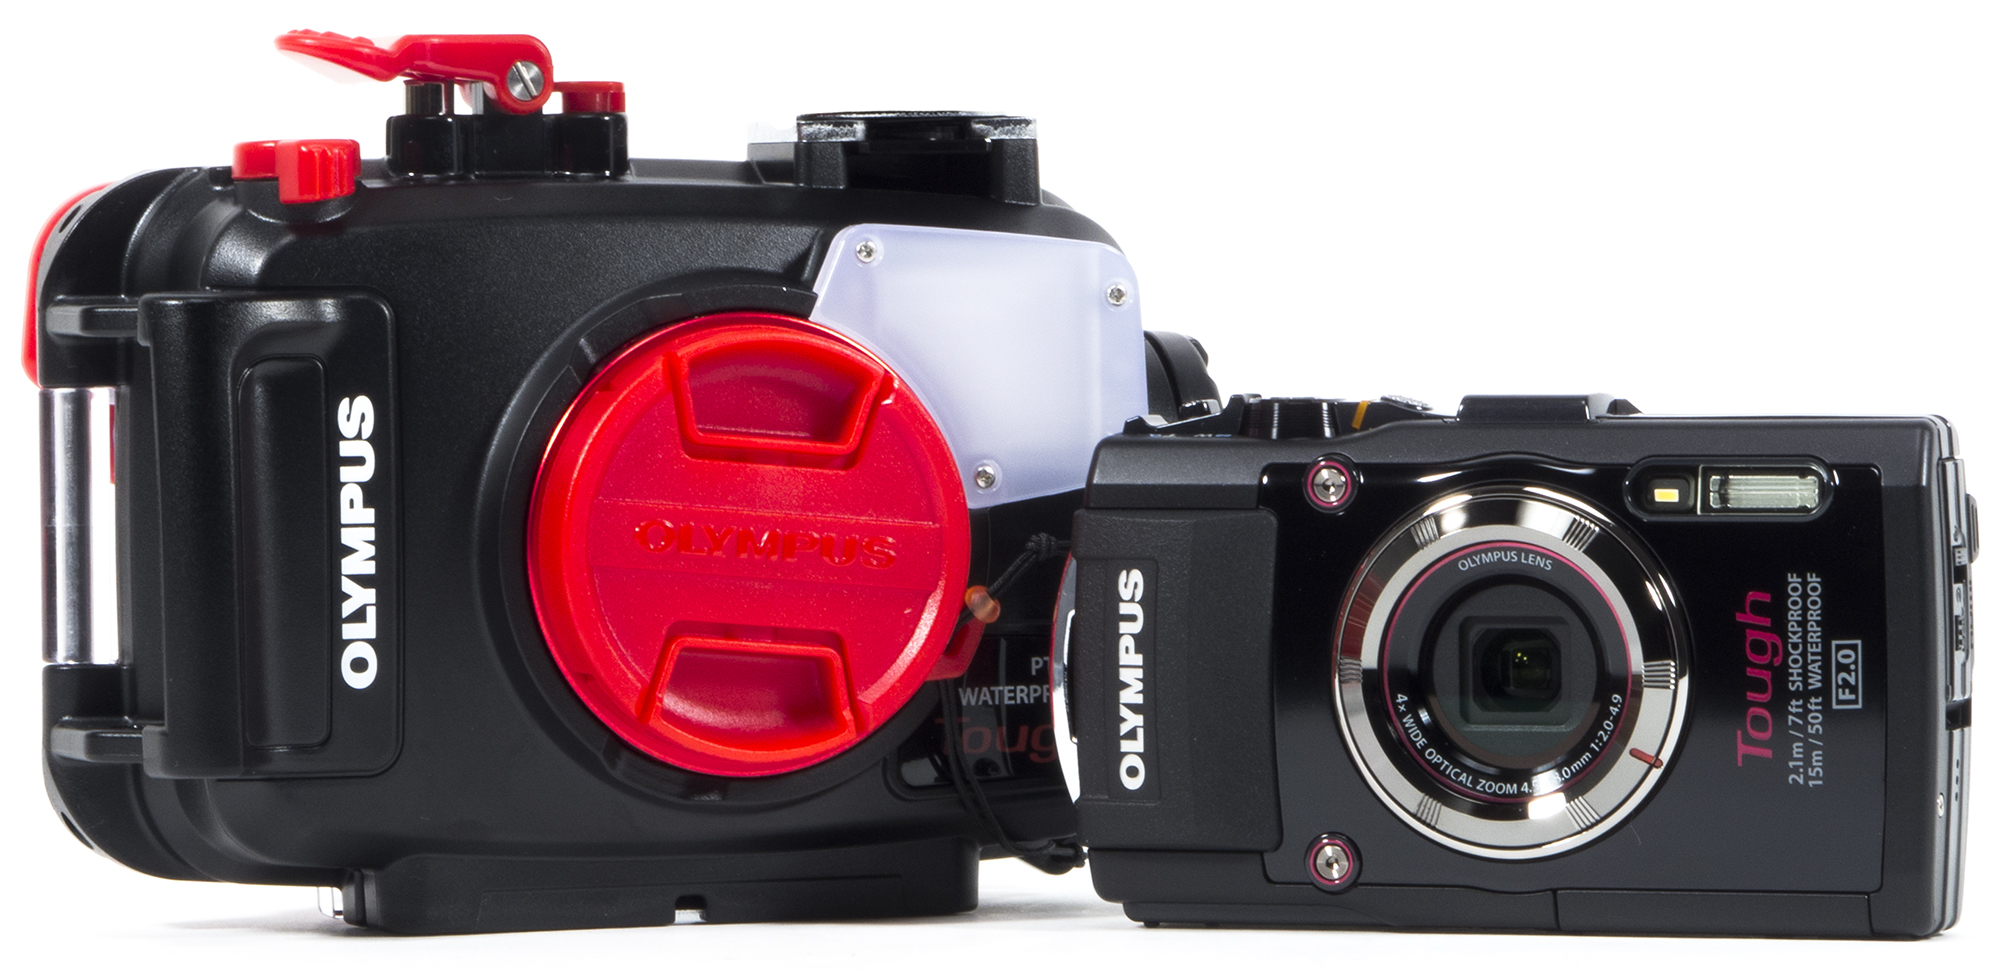 The Olympus TG-4 Tough and PT-056 Underwater Housing